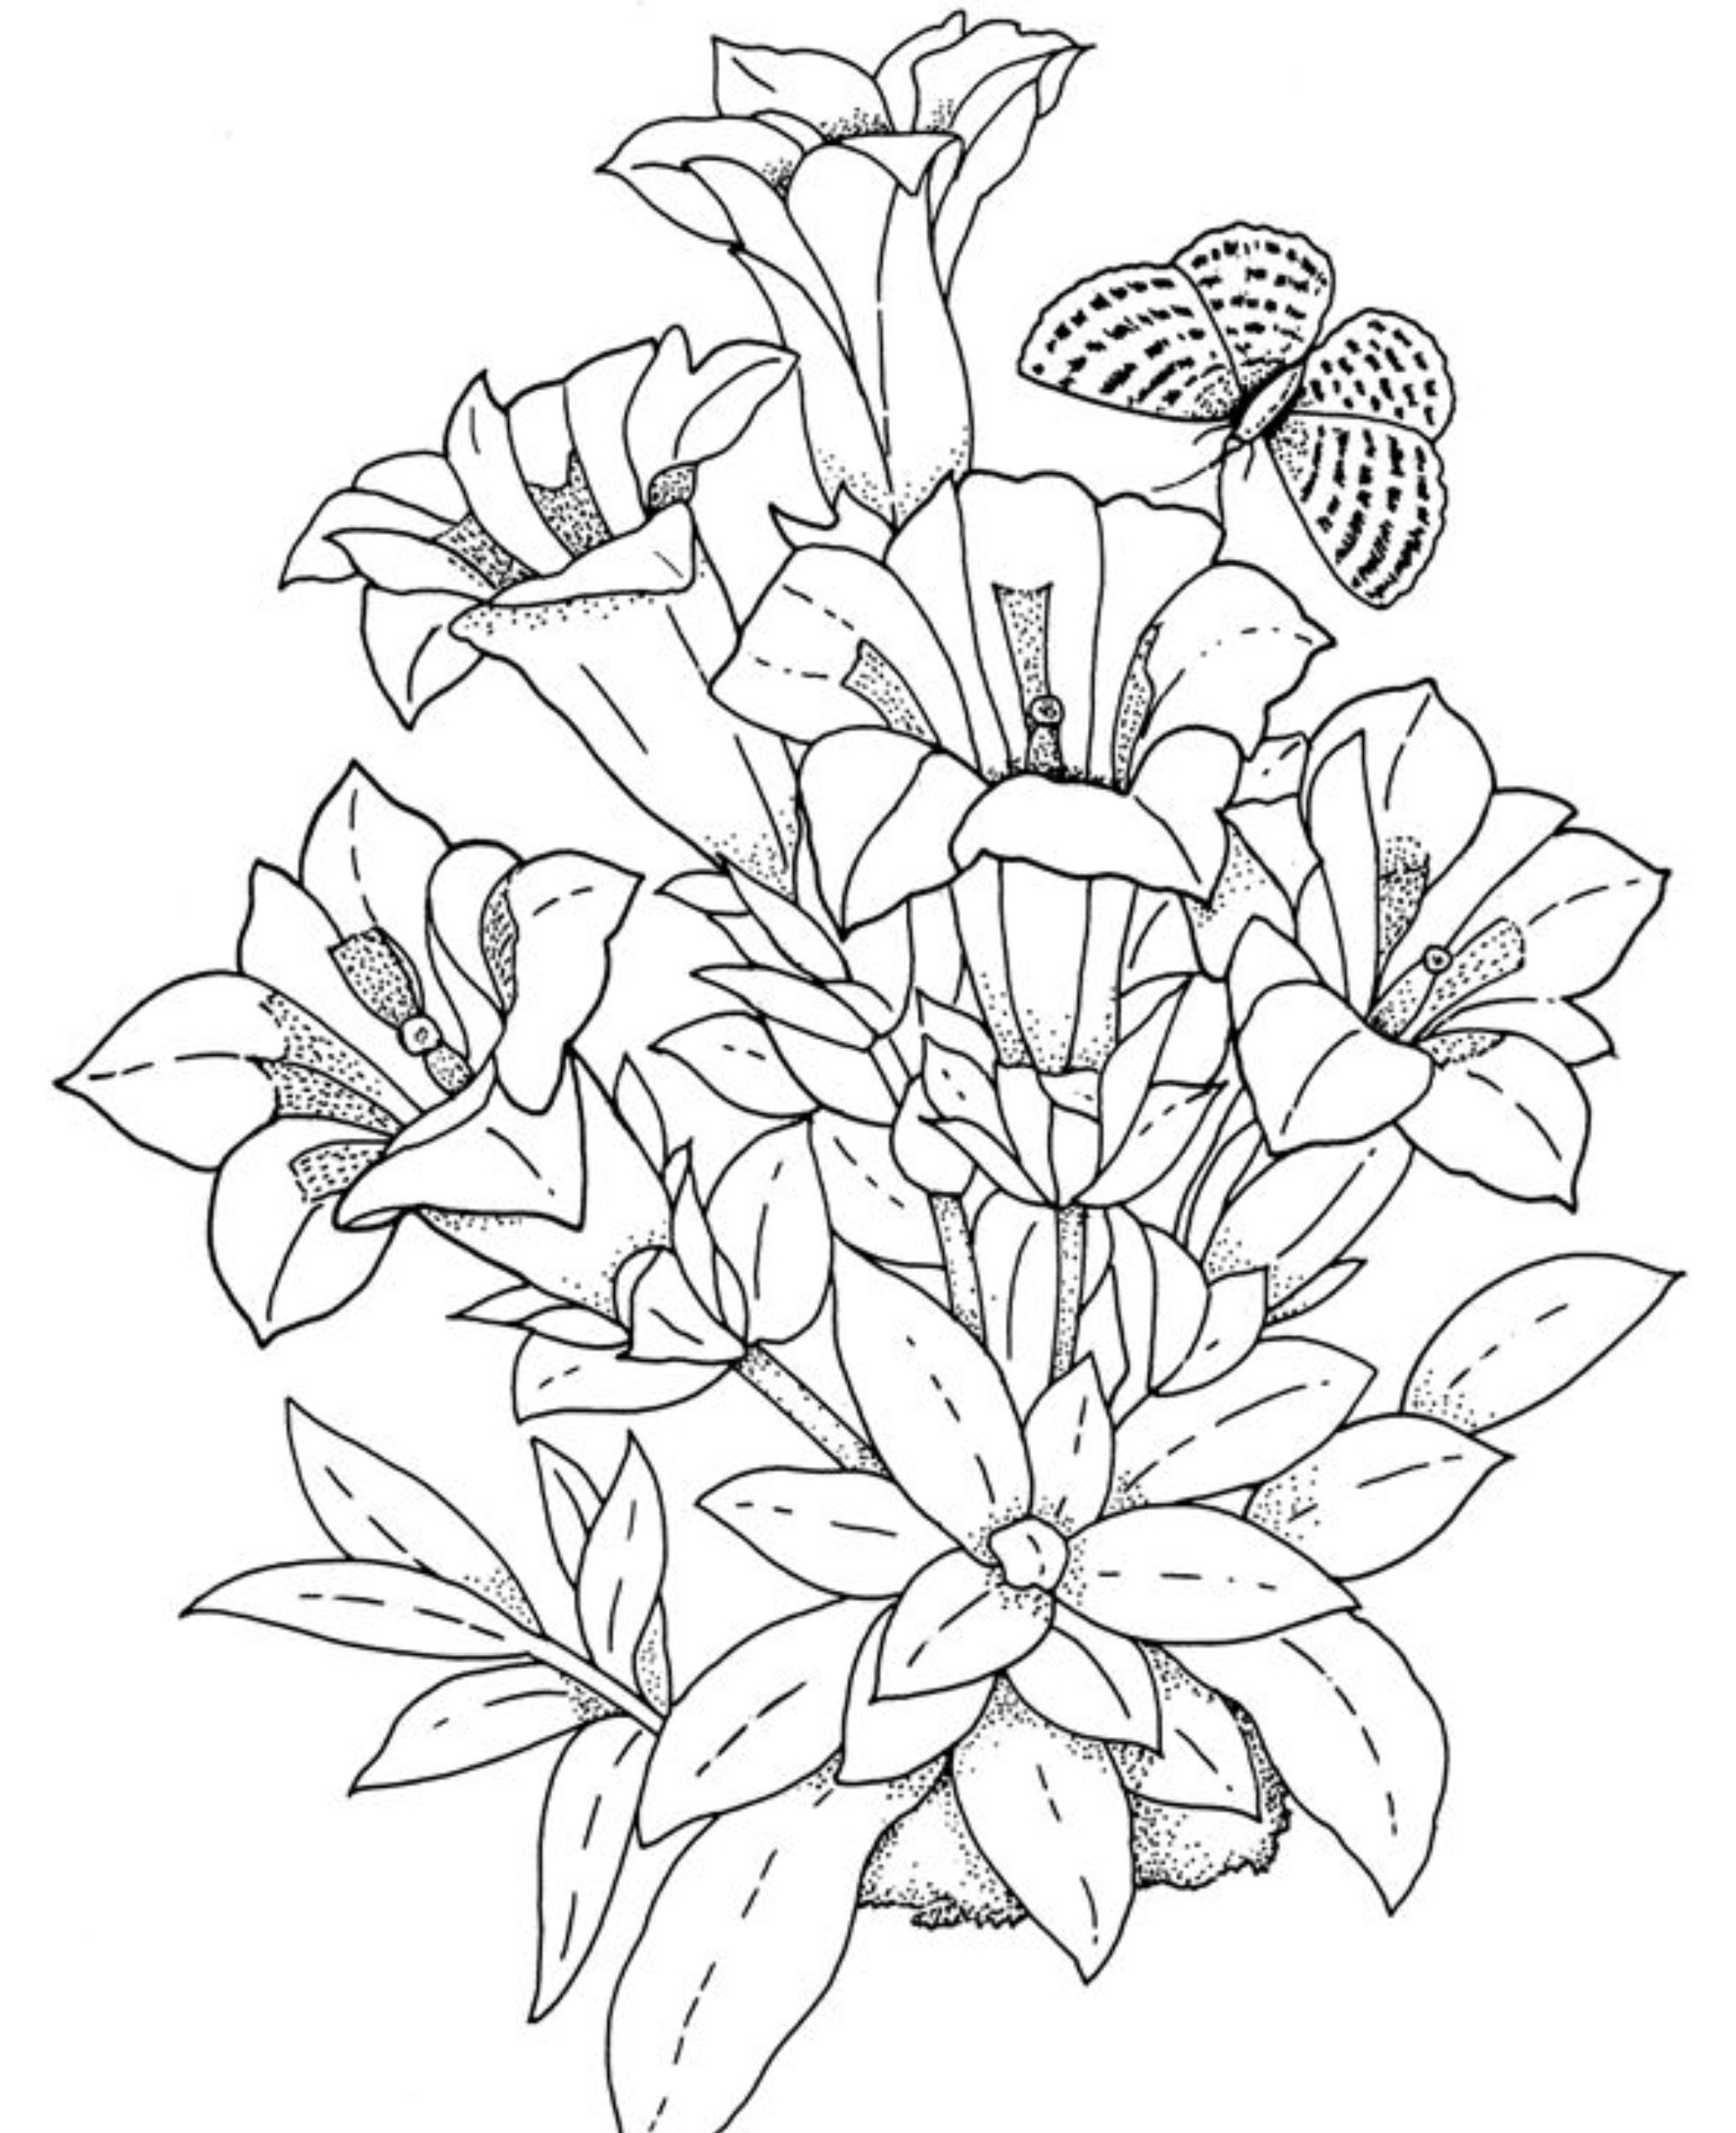 adult coloring pages flowers free printable floral coloring page ausdruckbare coloring pages adult flowers